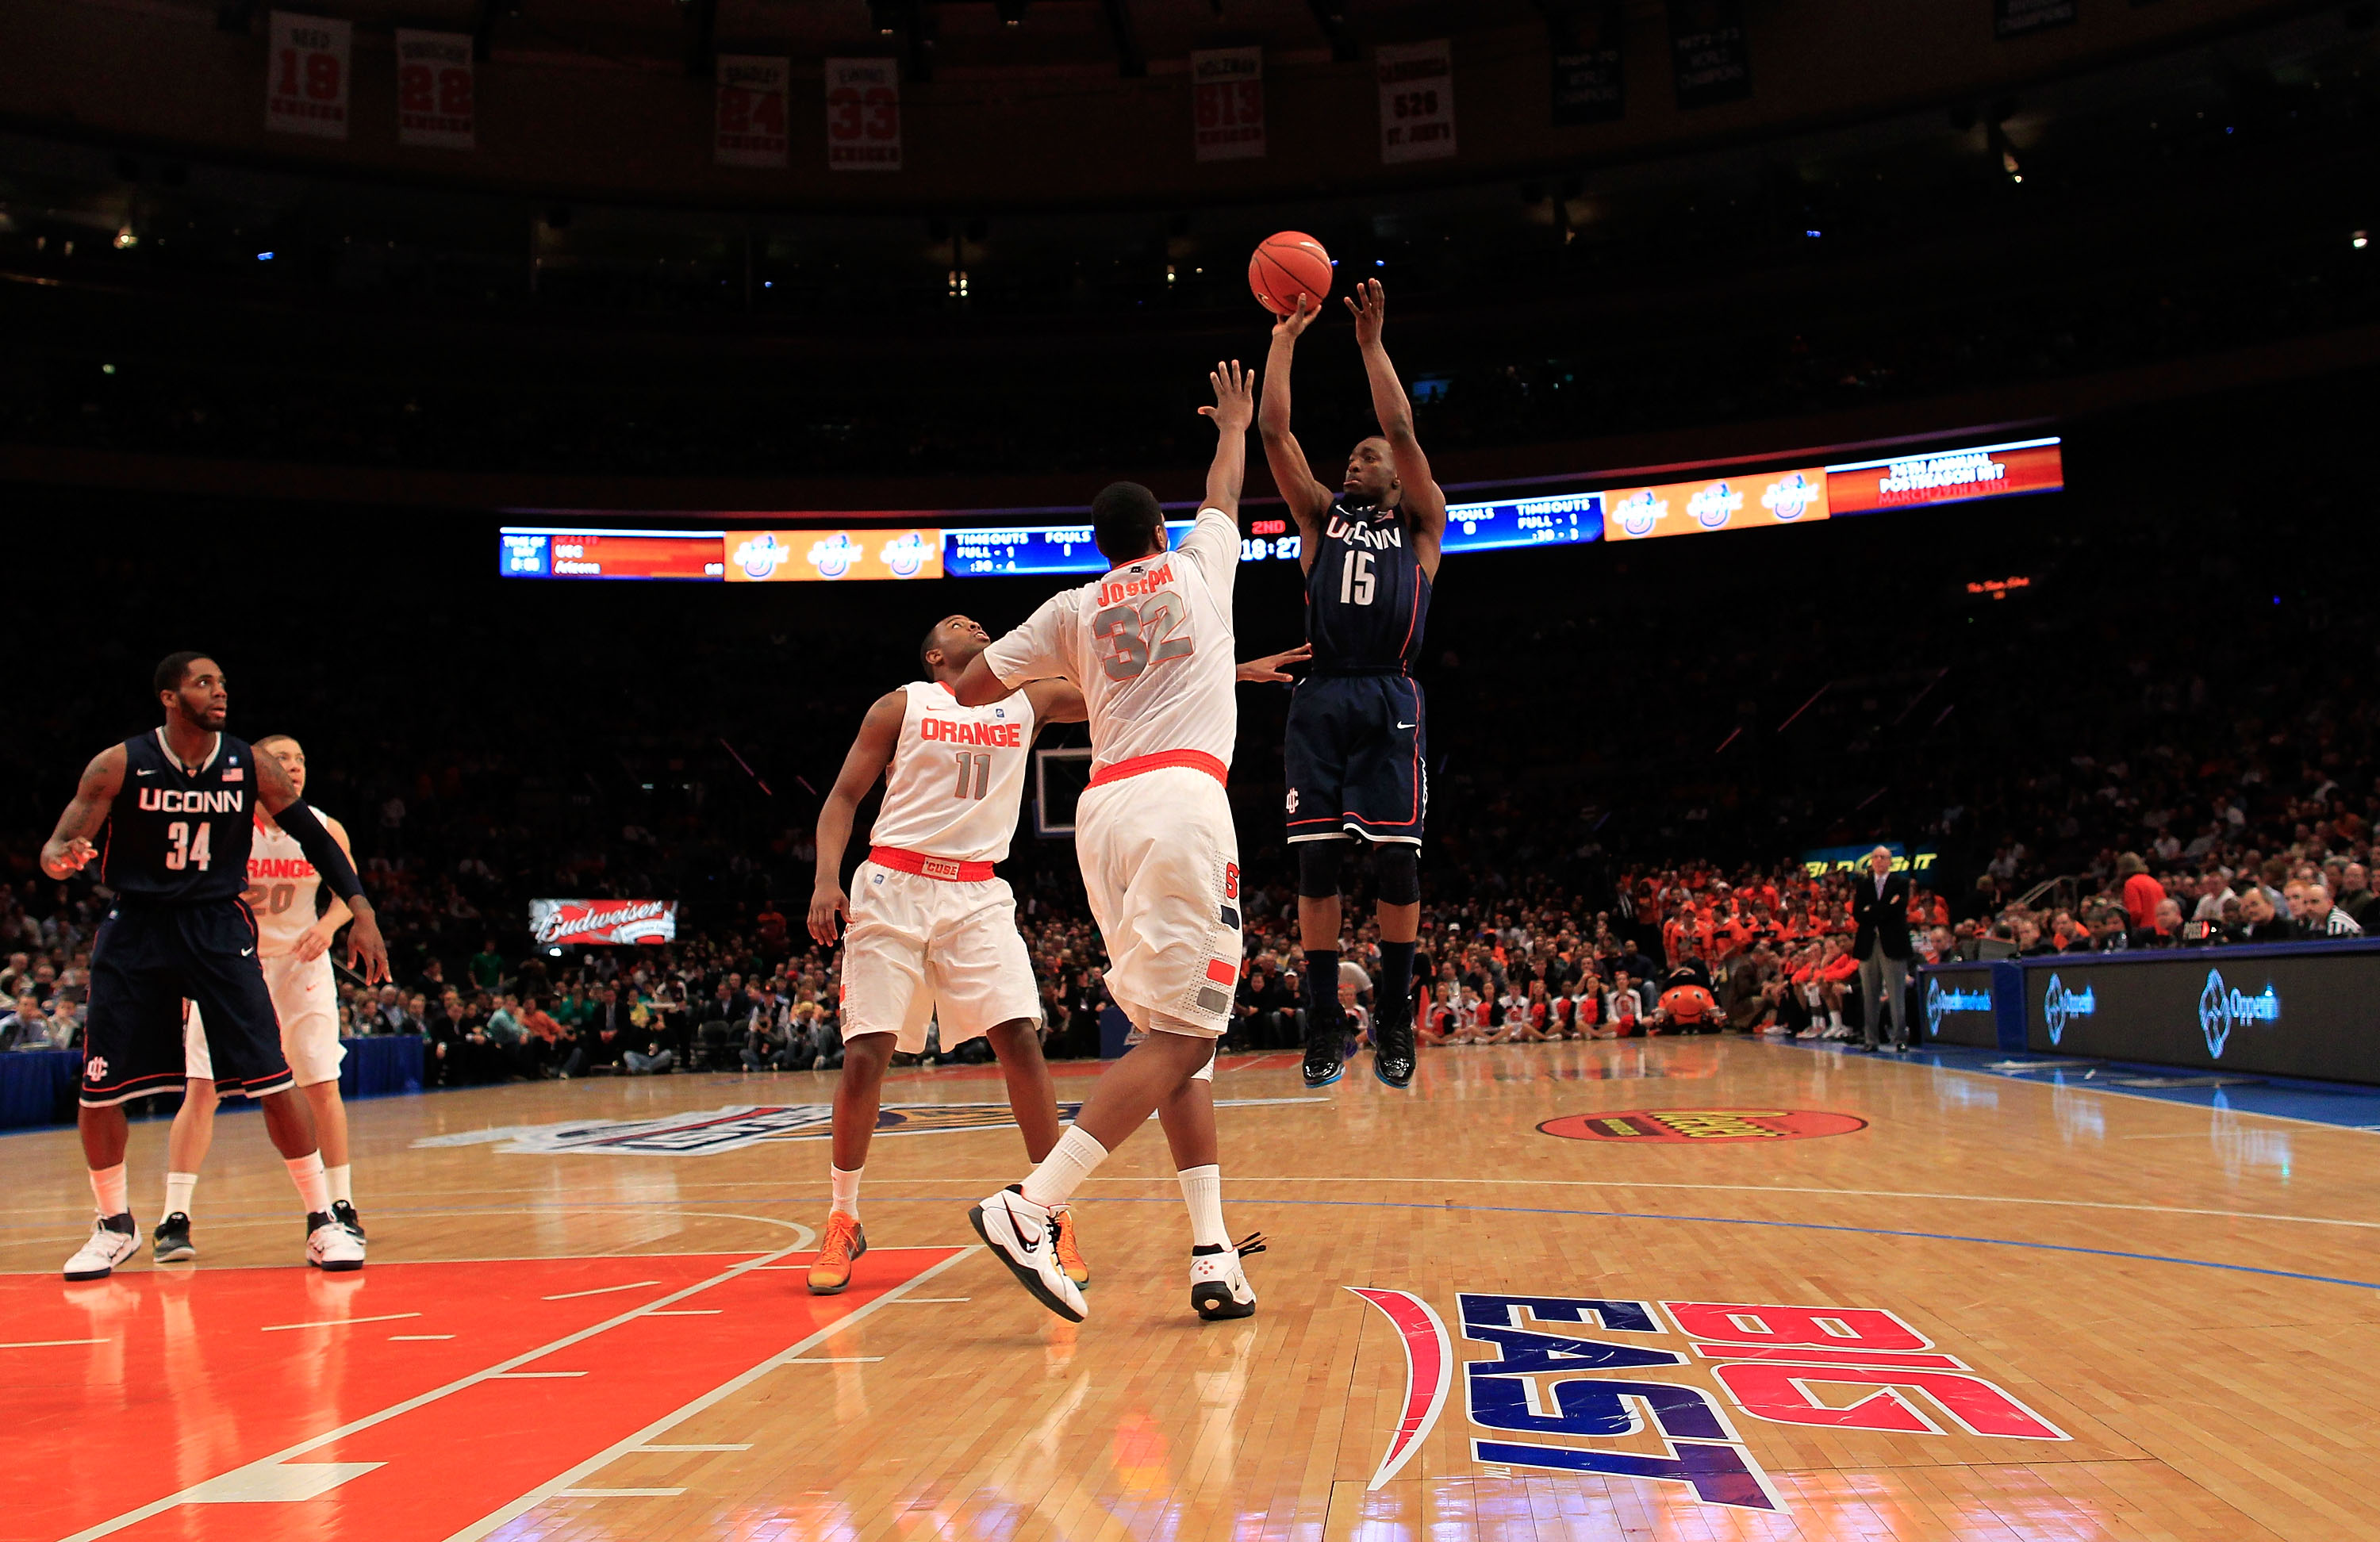 NEW YORK, NY - MARCH 11: Kemba Walker #15 of the Connecticut Huskies shoots over Kris Joseph #32 of the Syracuse Orange during the semifinals of the 2011 Big East Men's Basketball Tournament presented by American Eagle Outfitters at Madison Square Garden